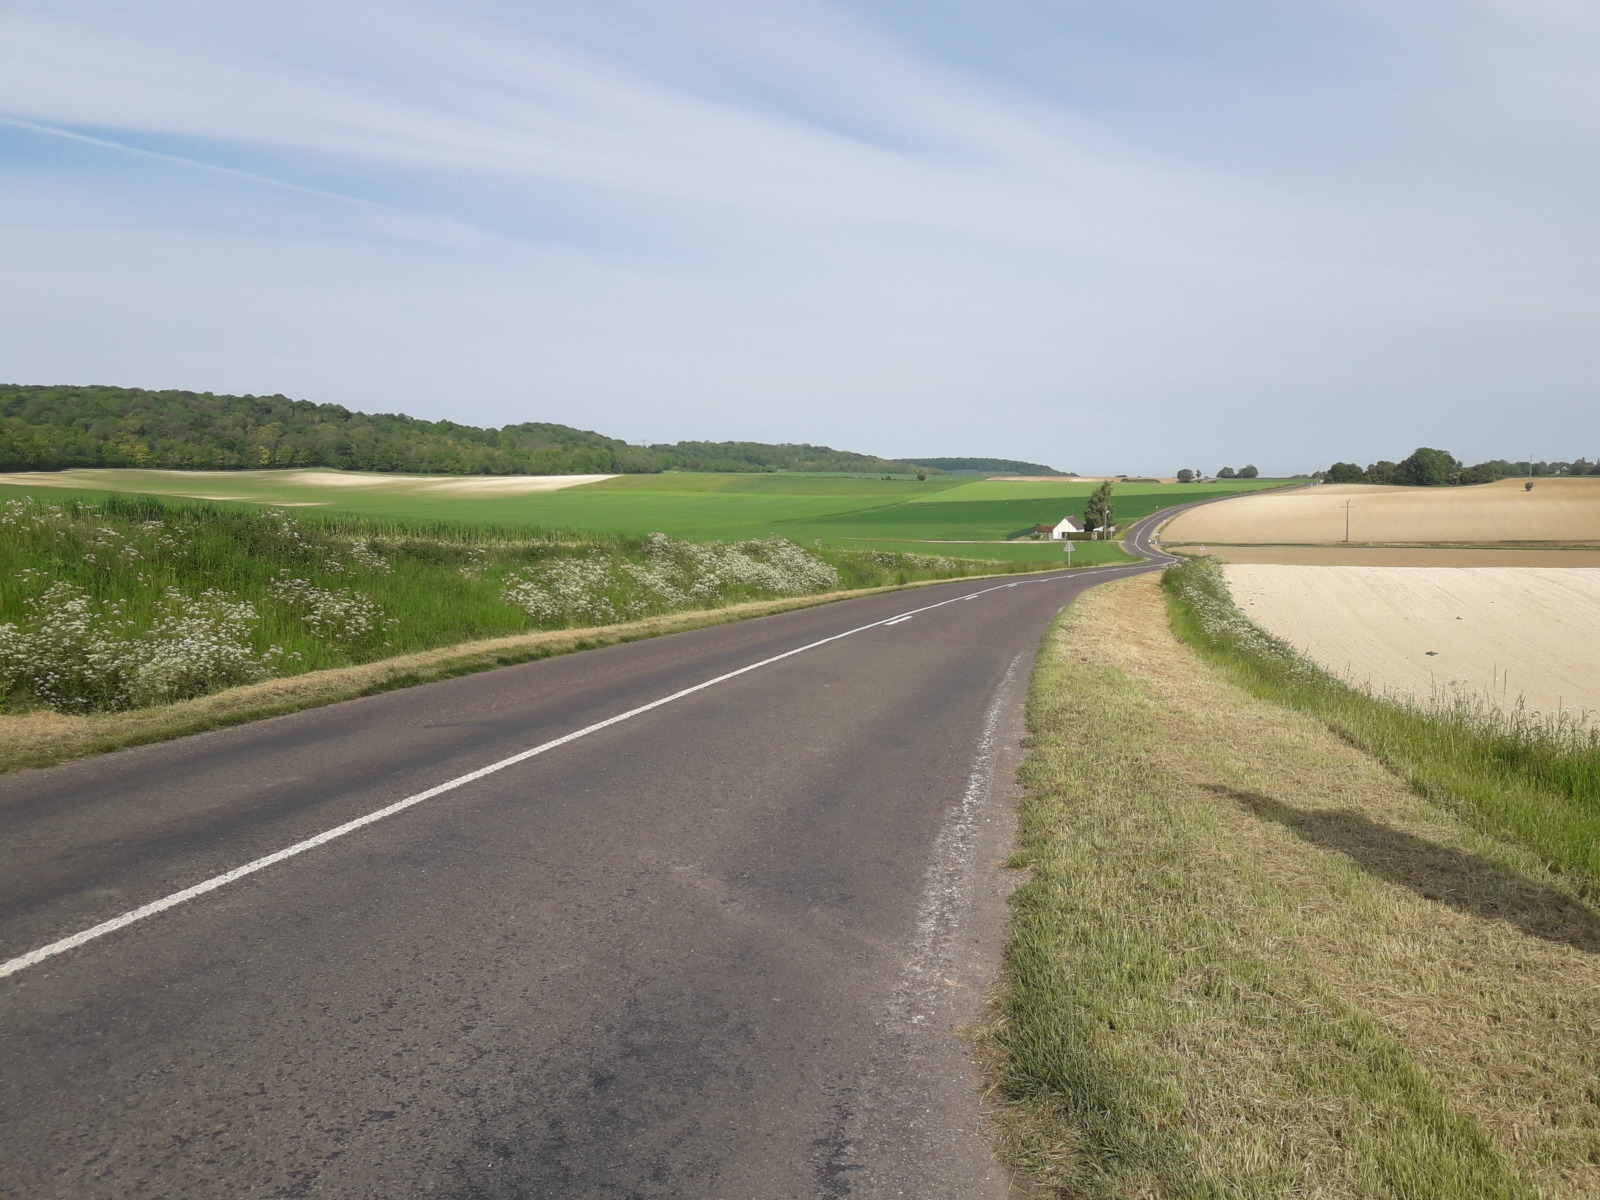 Road fields